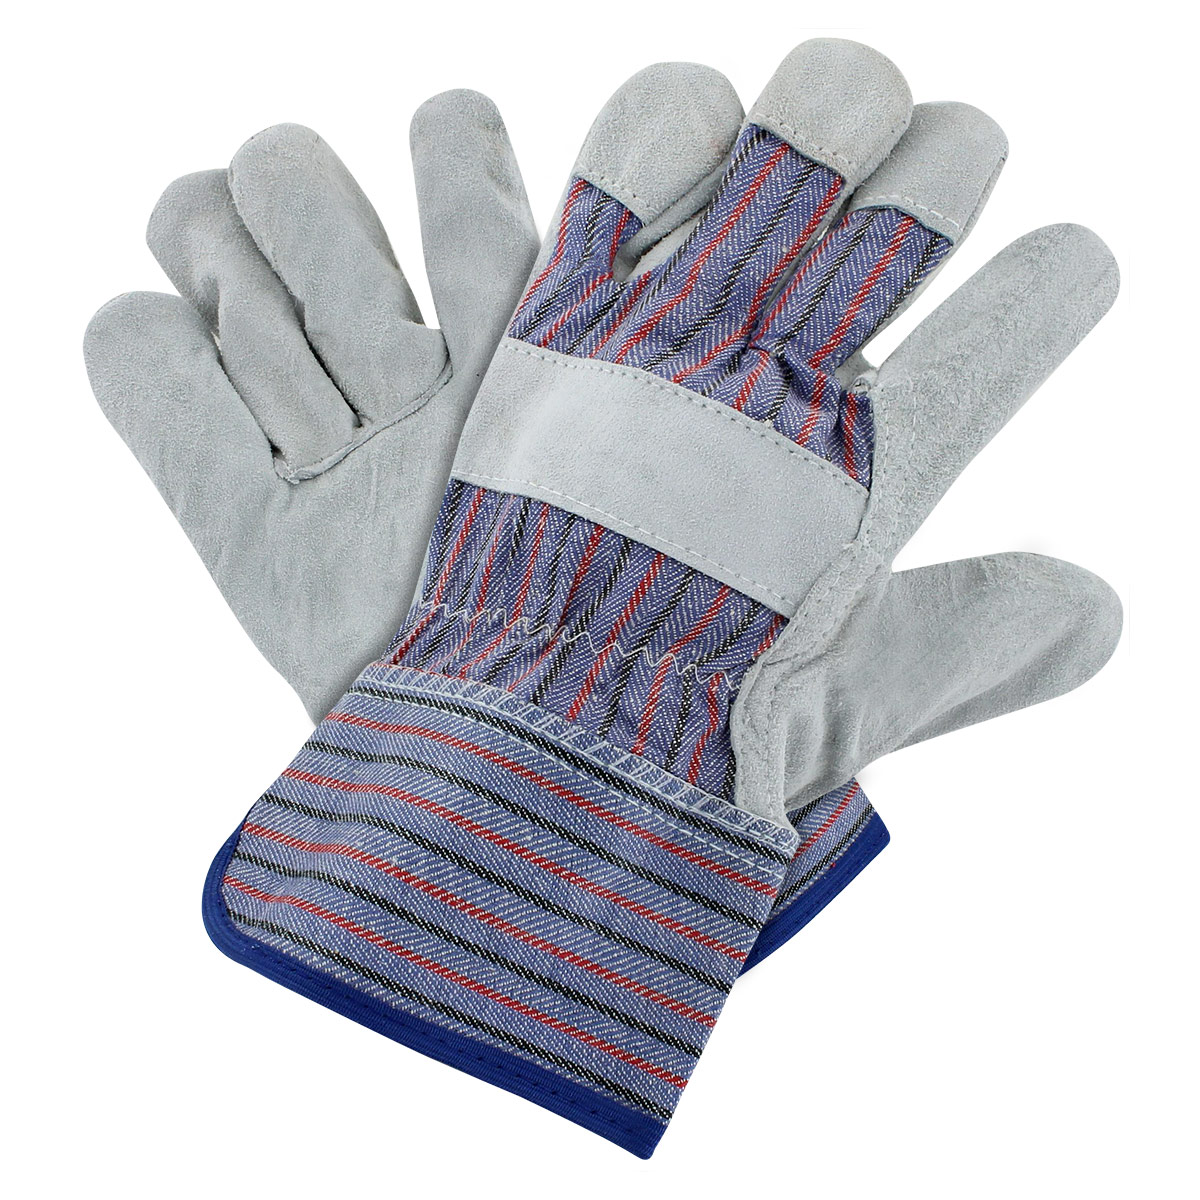 12-Pack, Rugged Blue Leather Palm Work Gloves